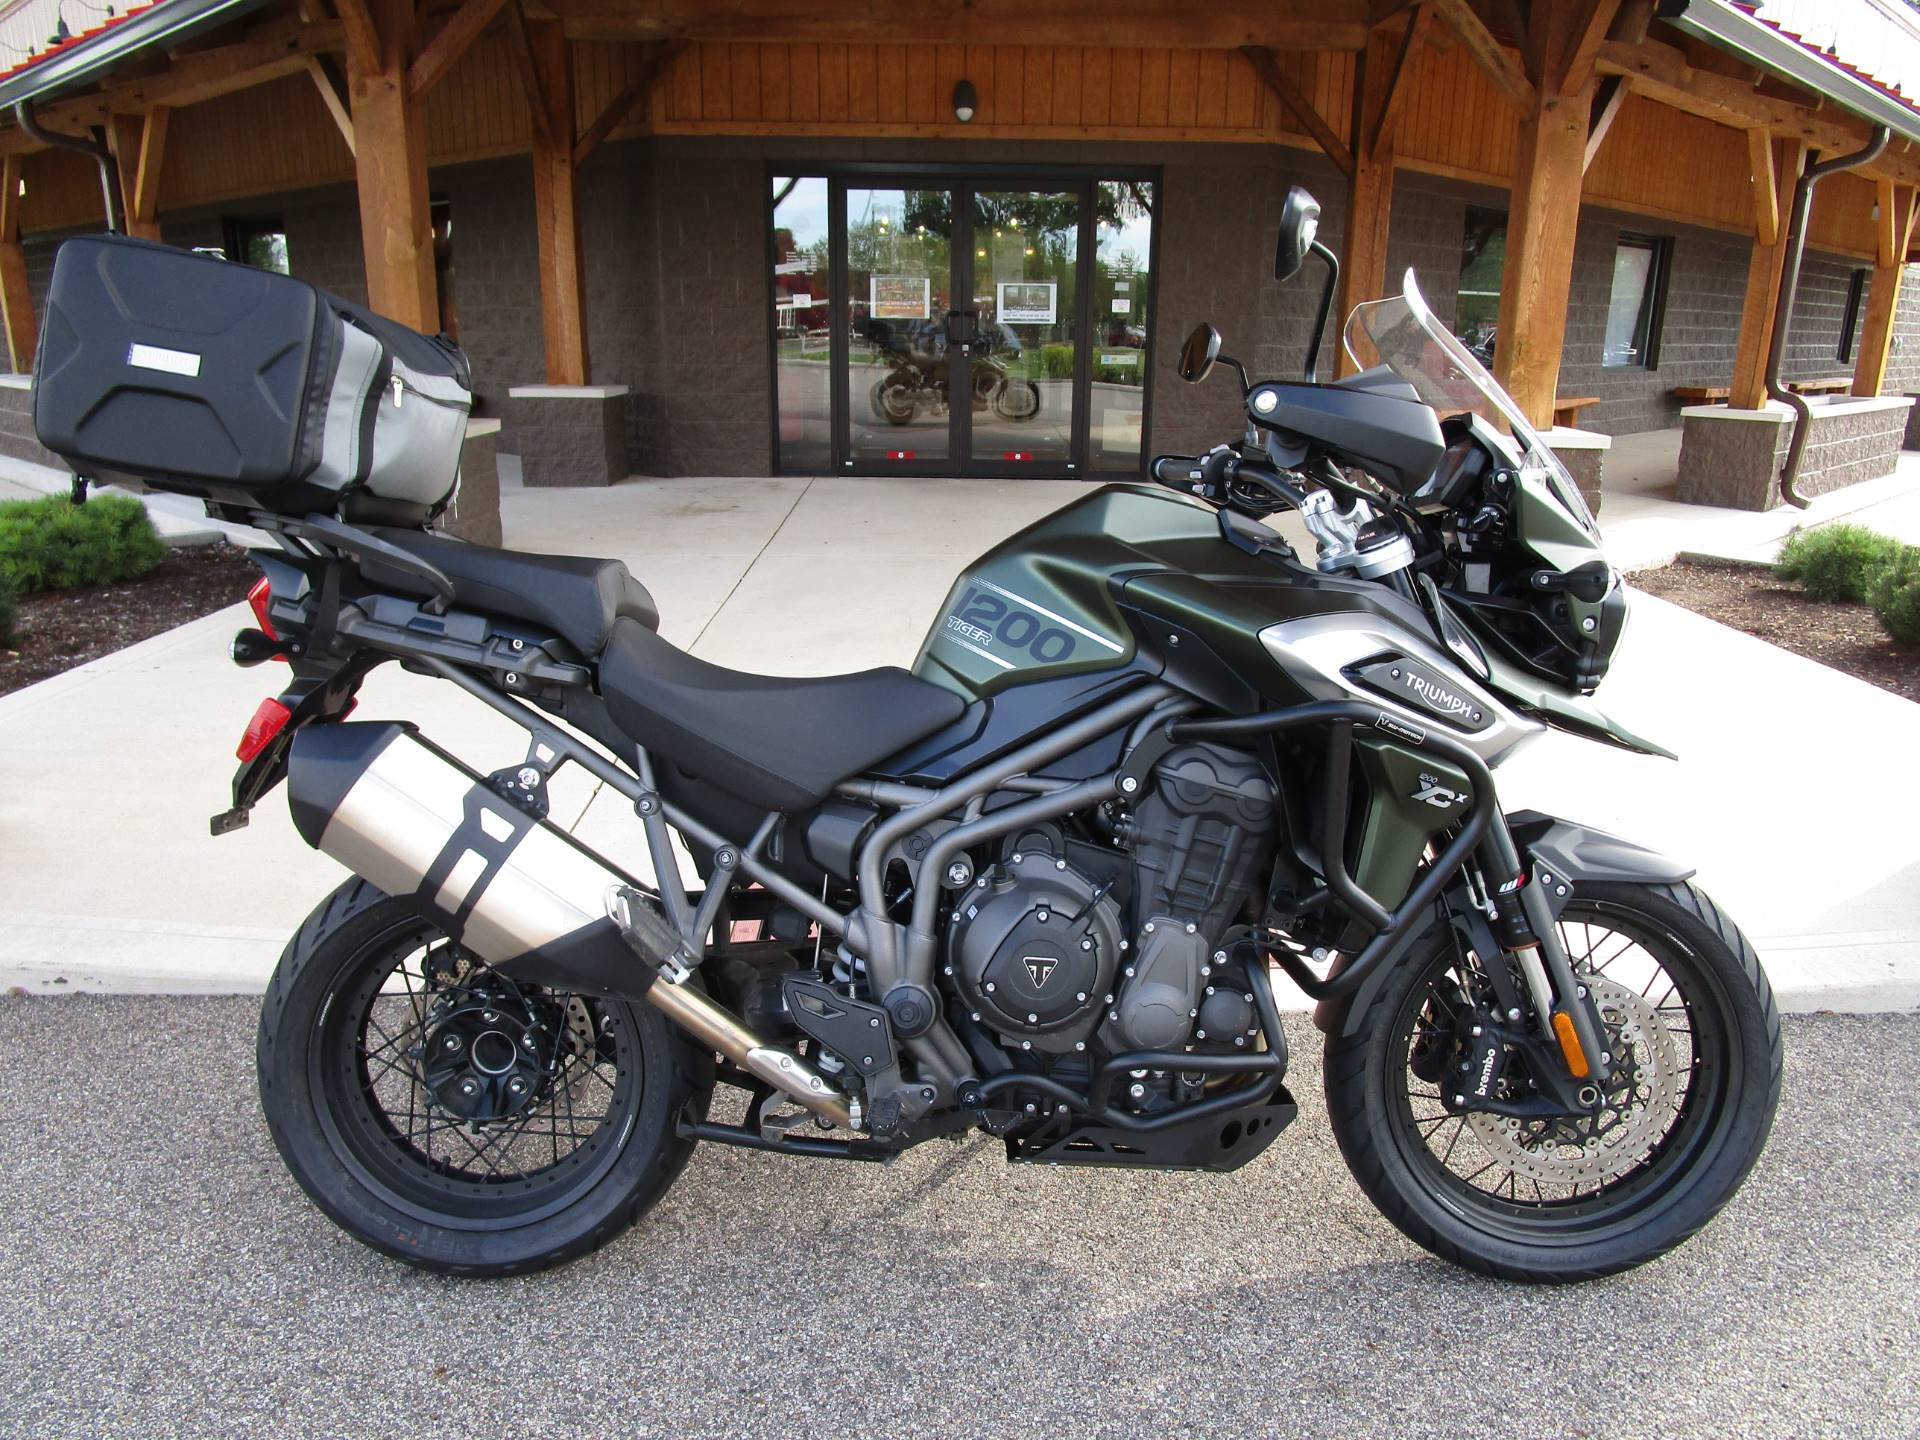 2018 Triumph Tiger 1200 XCx in Elkhart, Indiana - Photo 1